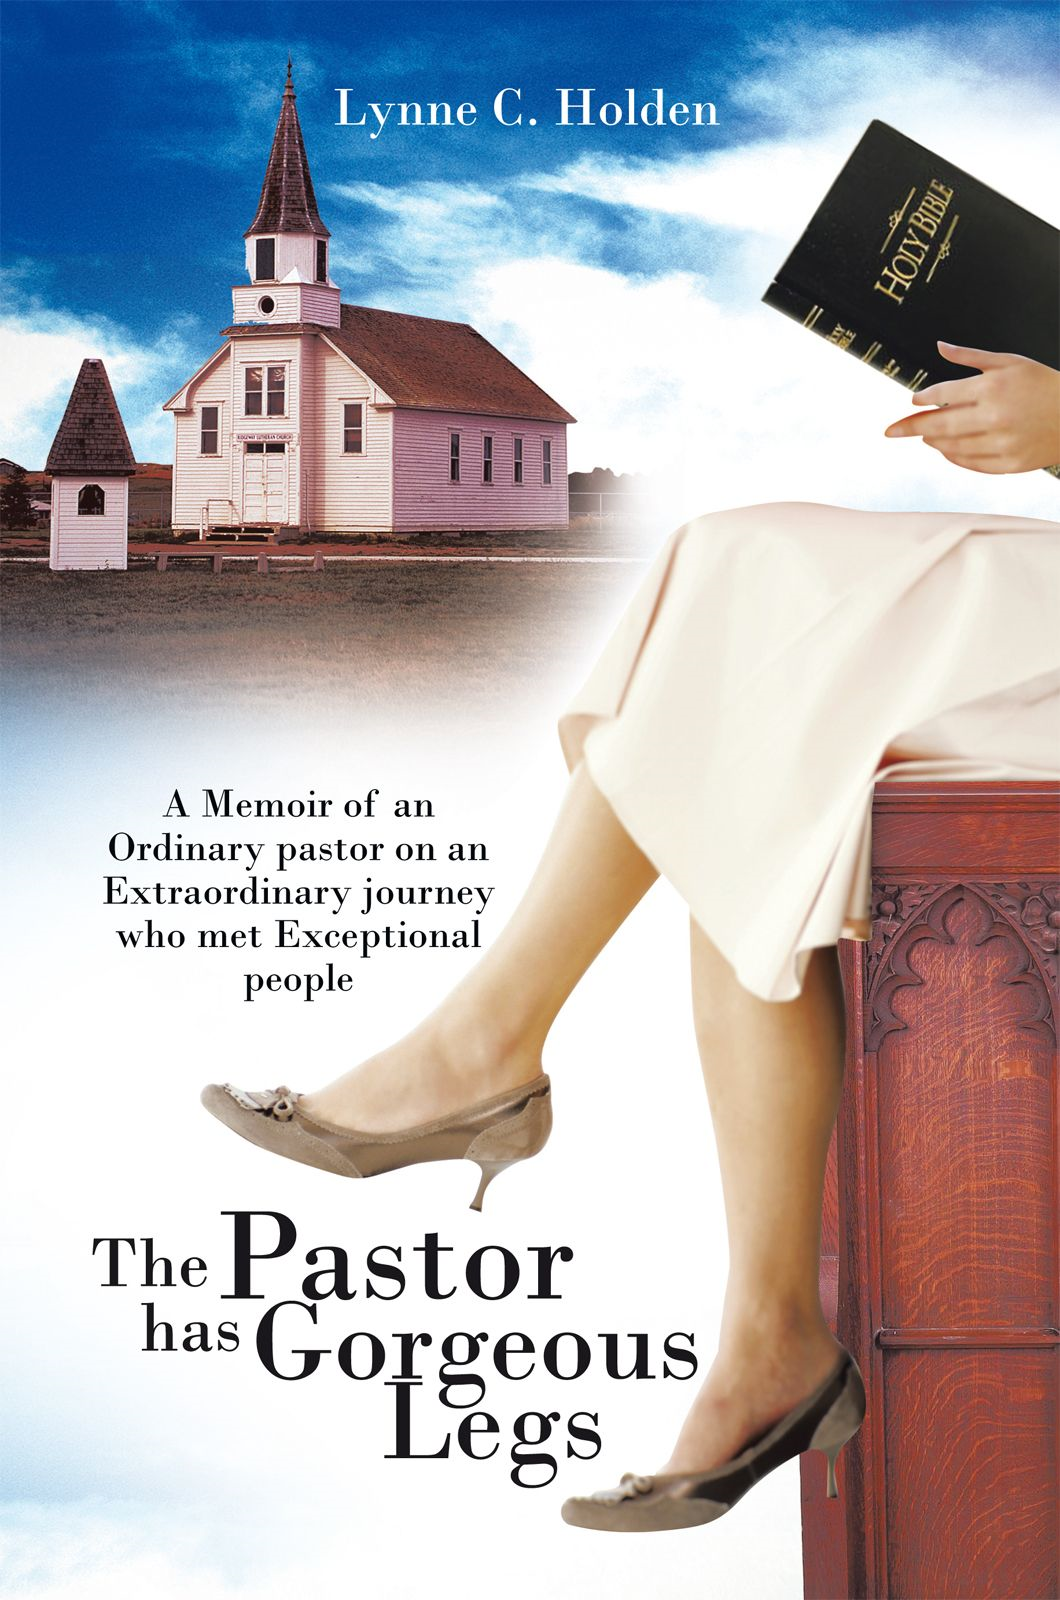 The Pastor has Gorgeous Legs